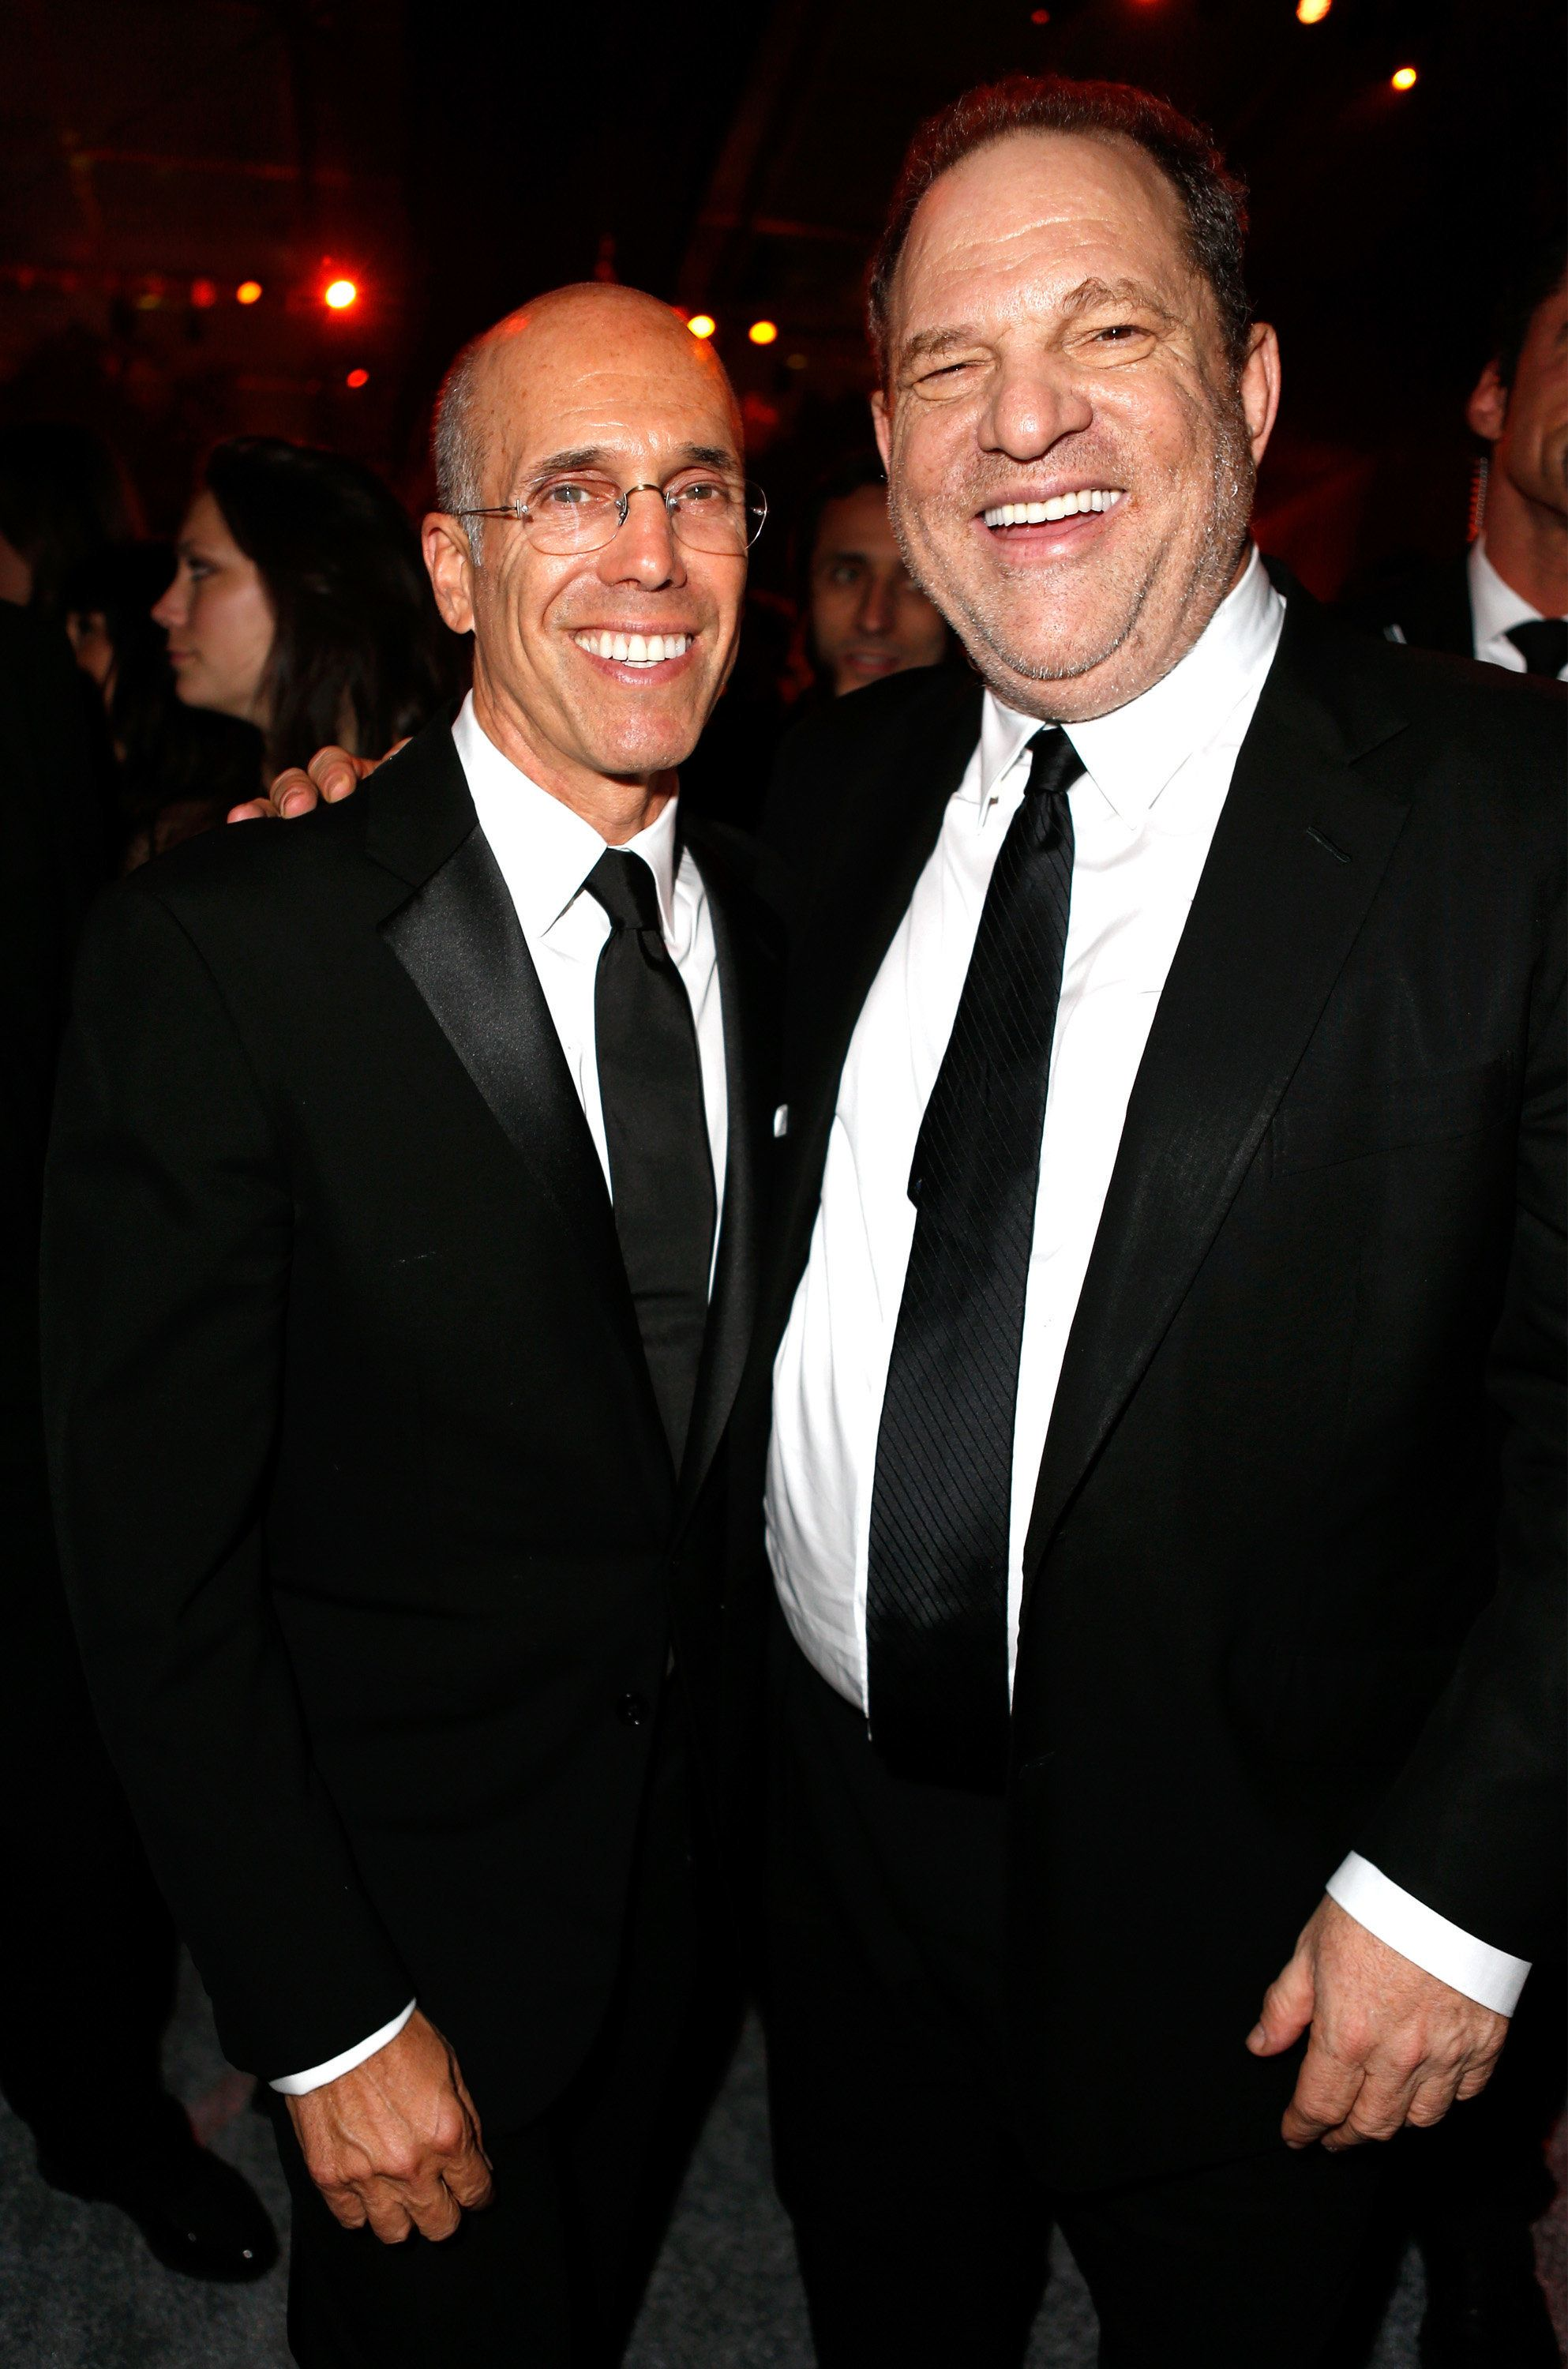 BEVERLY HILLS, CA - JANUARY 11:  DreamWorks Animation CEO Jeffrey Katzenberg  (L) producer Harvey Weinstein attend The Weinstein Company & Netflix's 2015 Golden Globes After Party presented by FIJI Water, Lexus, Laura Mercier and Marie Claire at The Beverly Hilton Hotel on January 11, 2015 in Beverly Hills, California.  (Photo by Jeff Vespa/Getty Images for TWC)